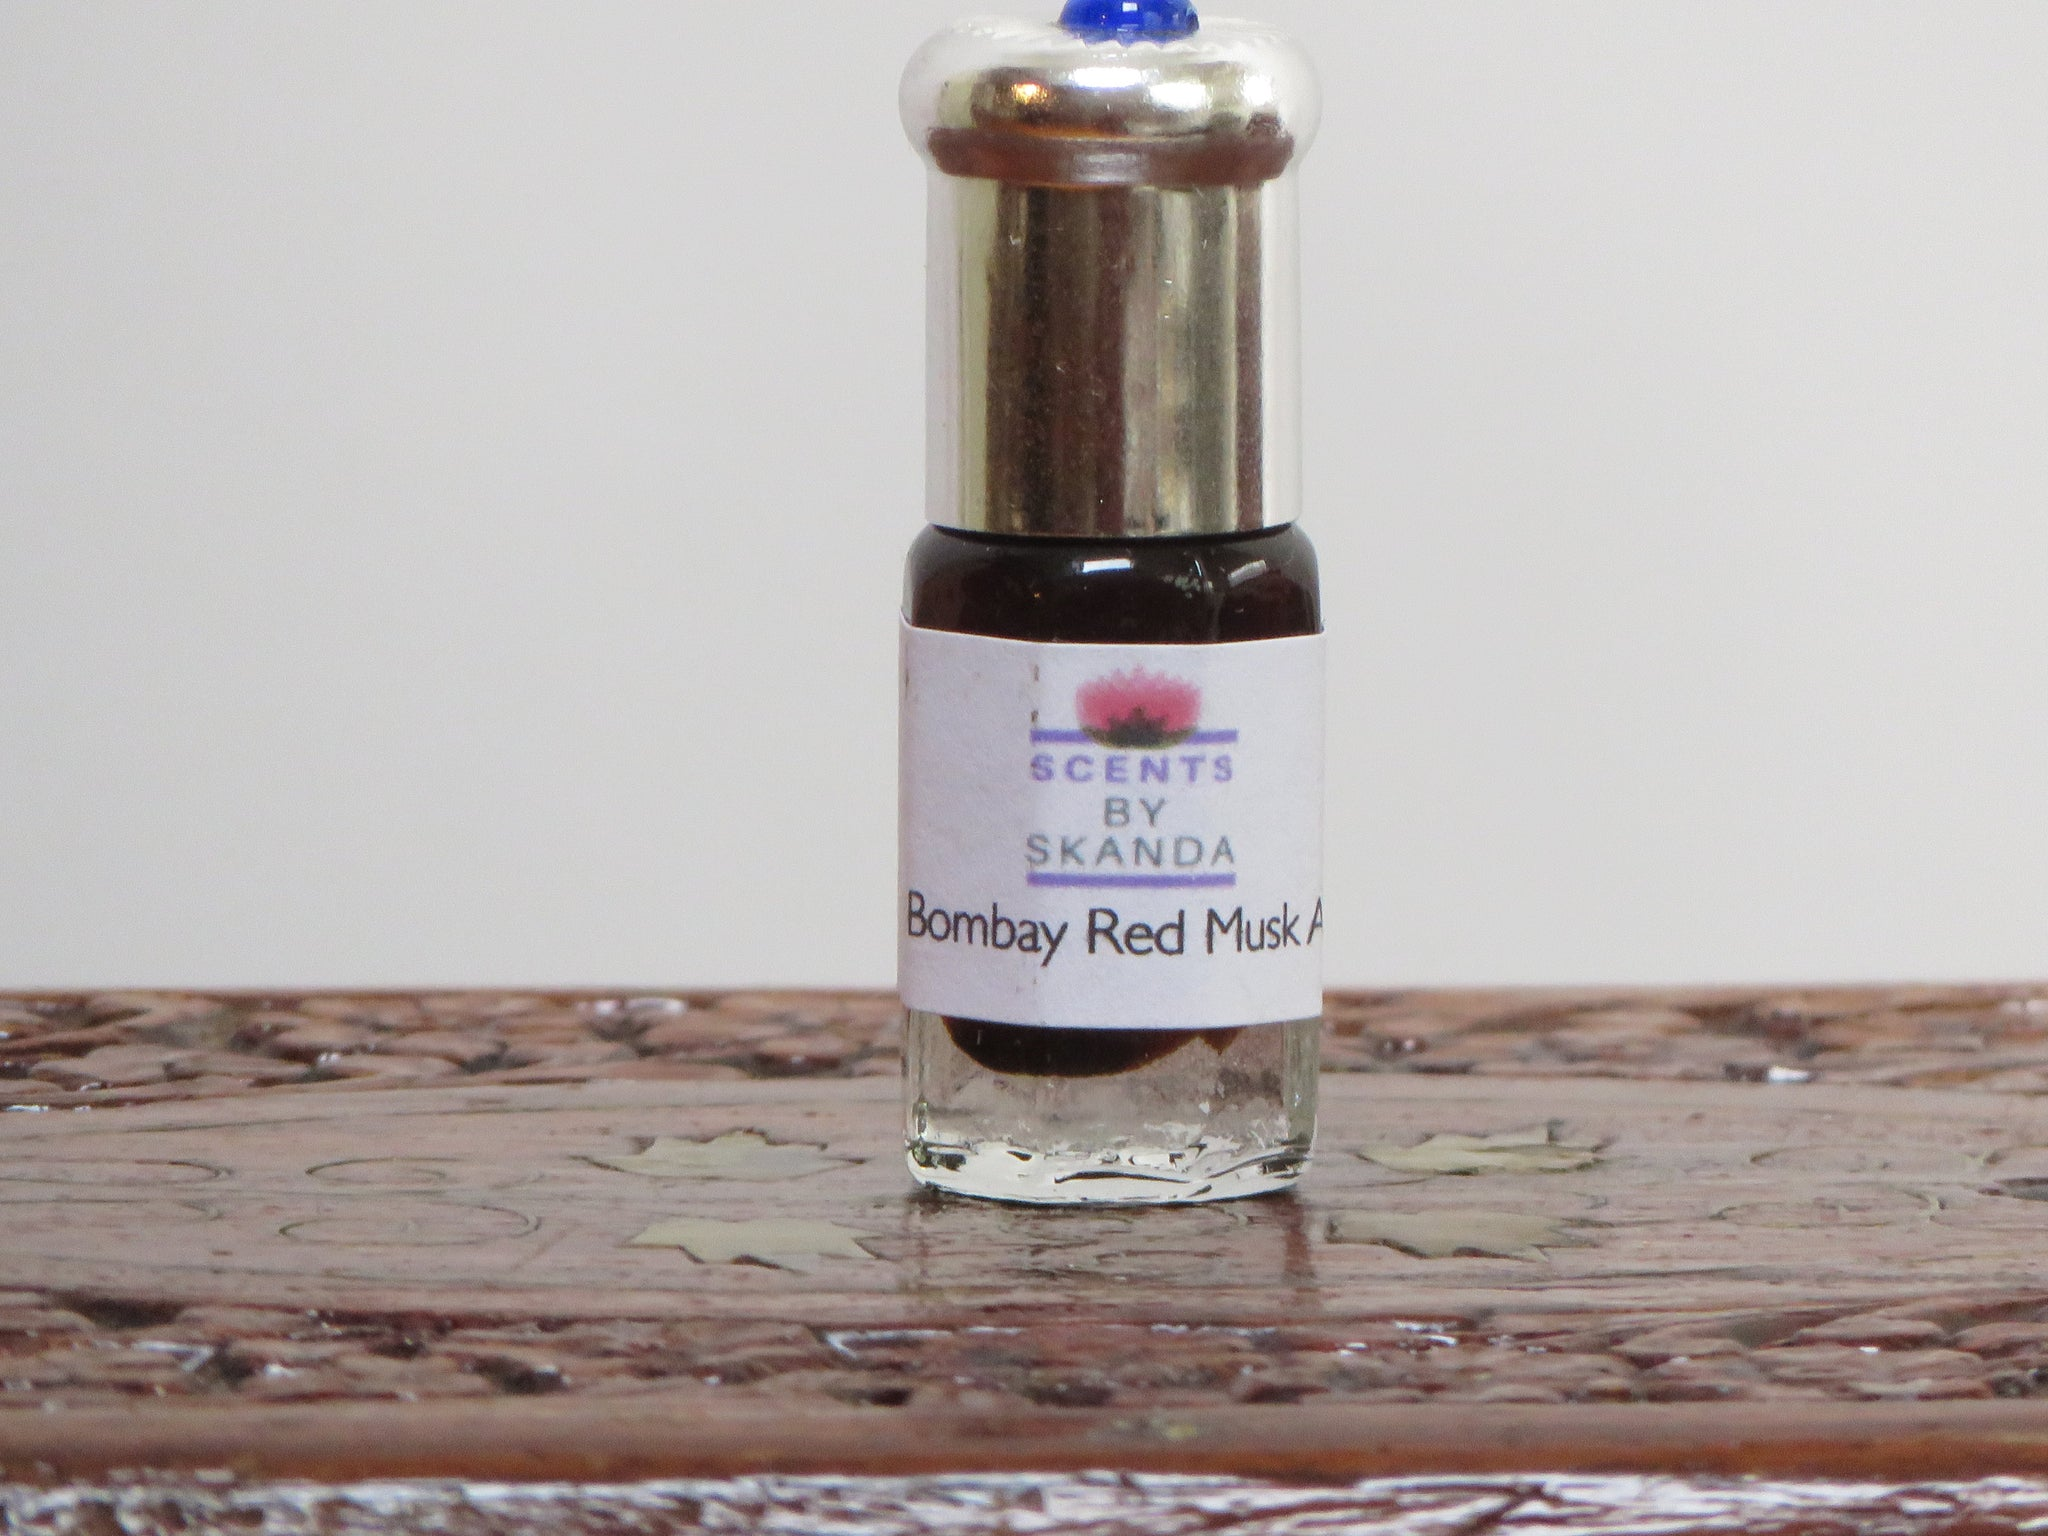 Bombay Red Musk- Attar fragrance - Sandalwood,Ambergris,Deer Musk